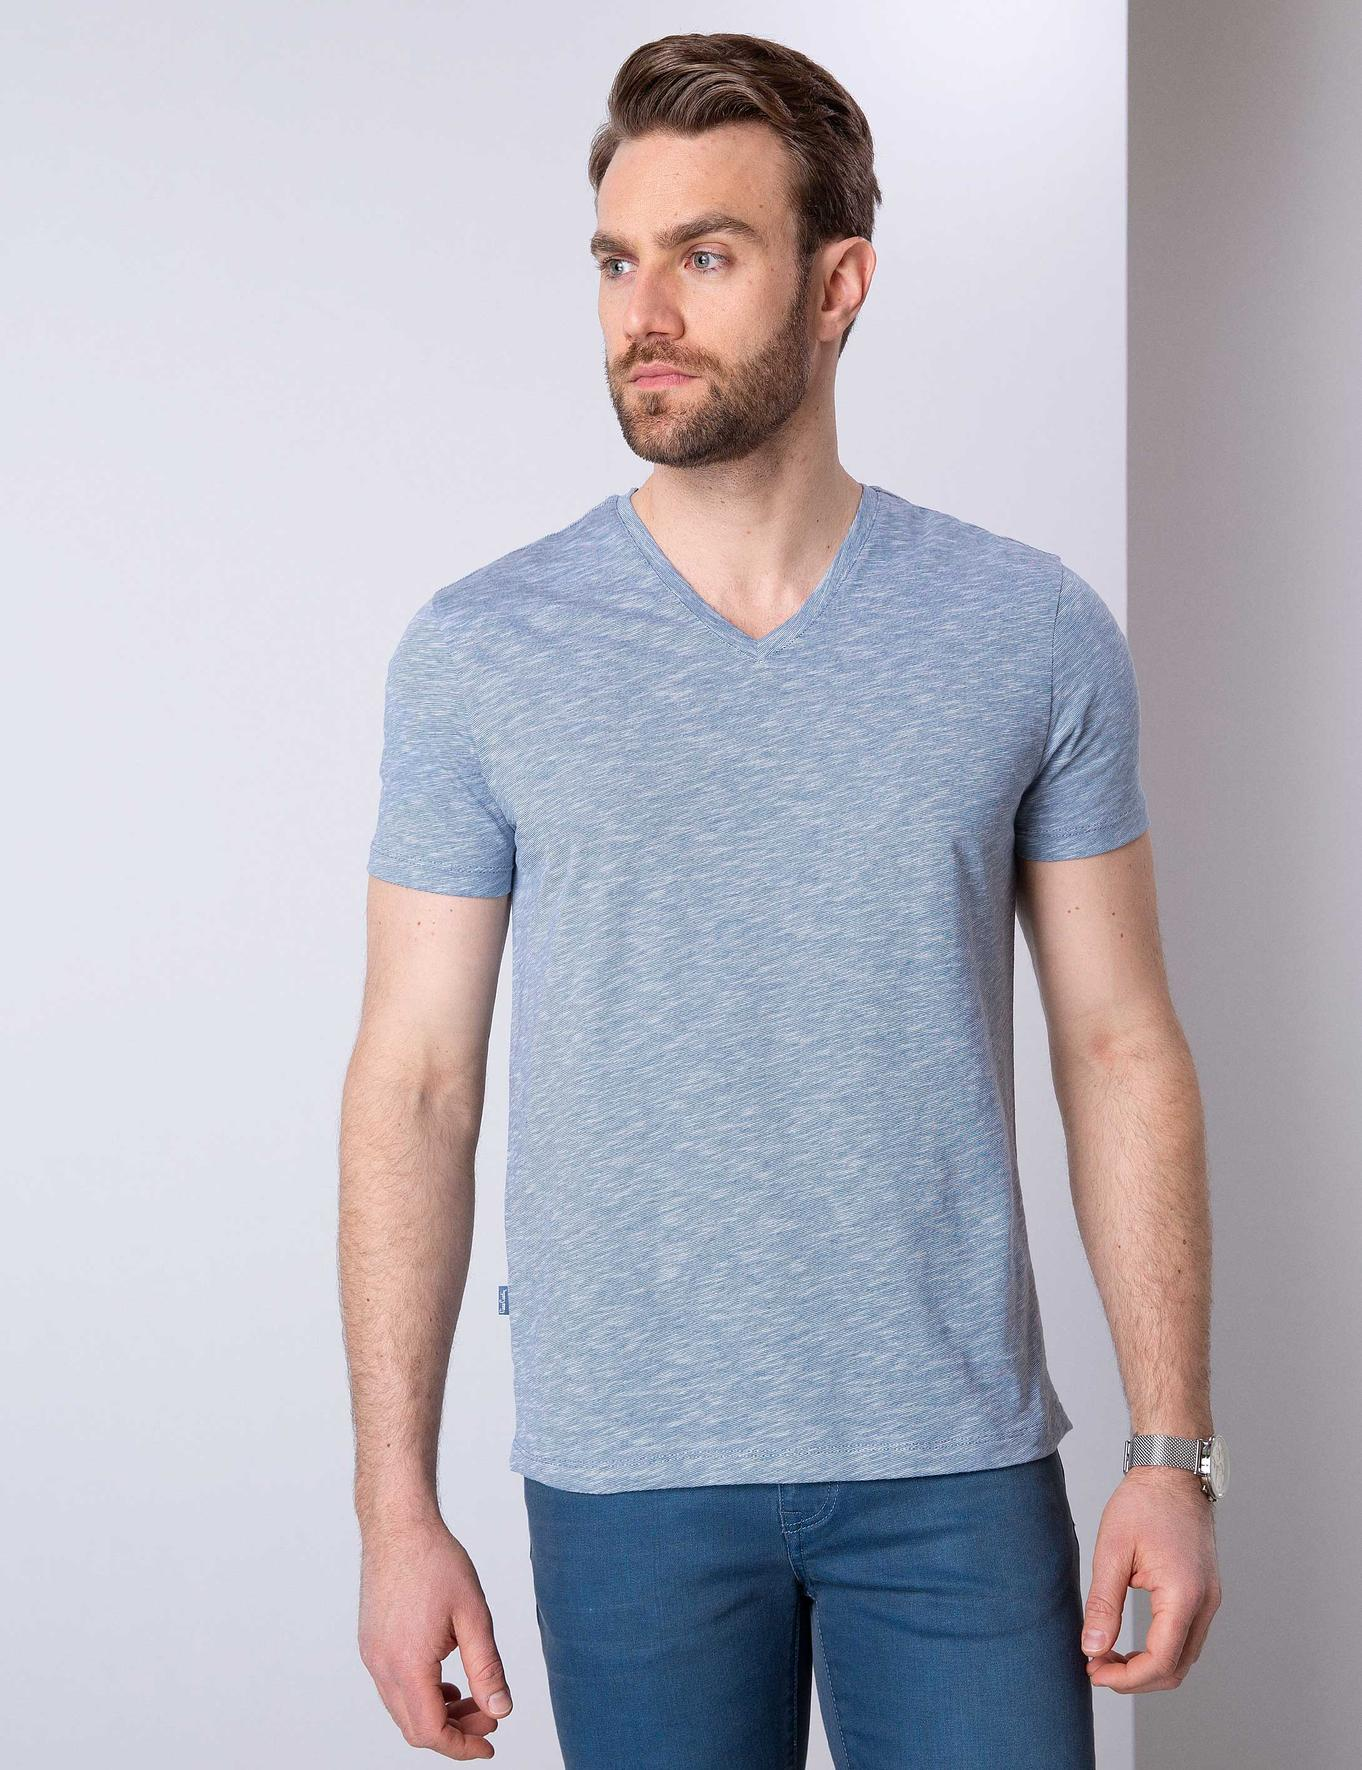 Mavi Slim Fit V Yaka T-Shirt